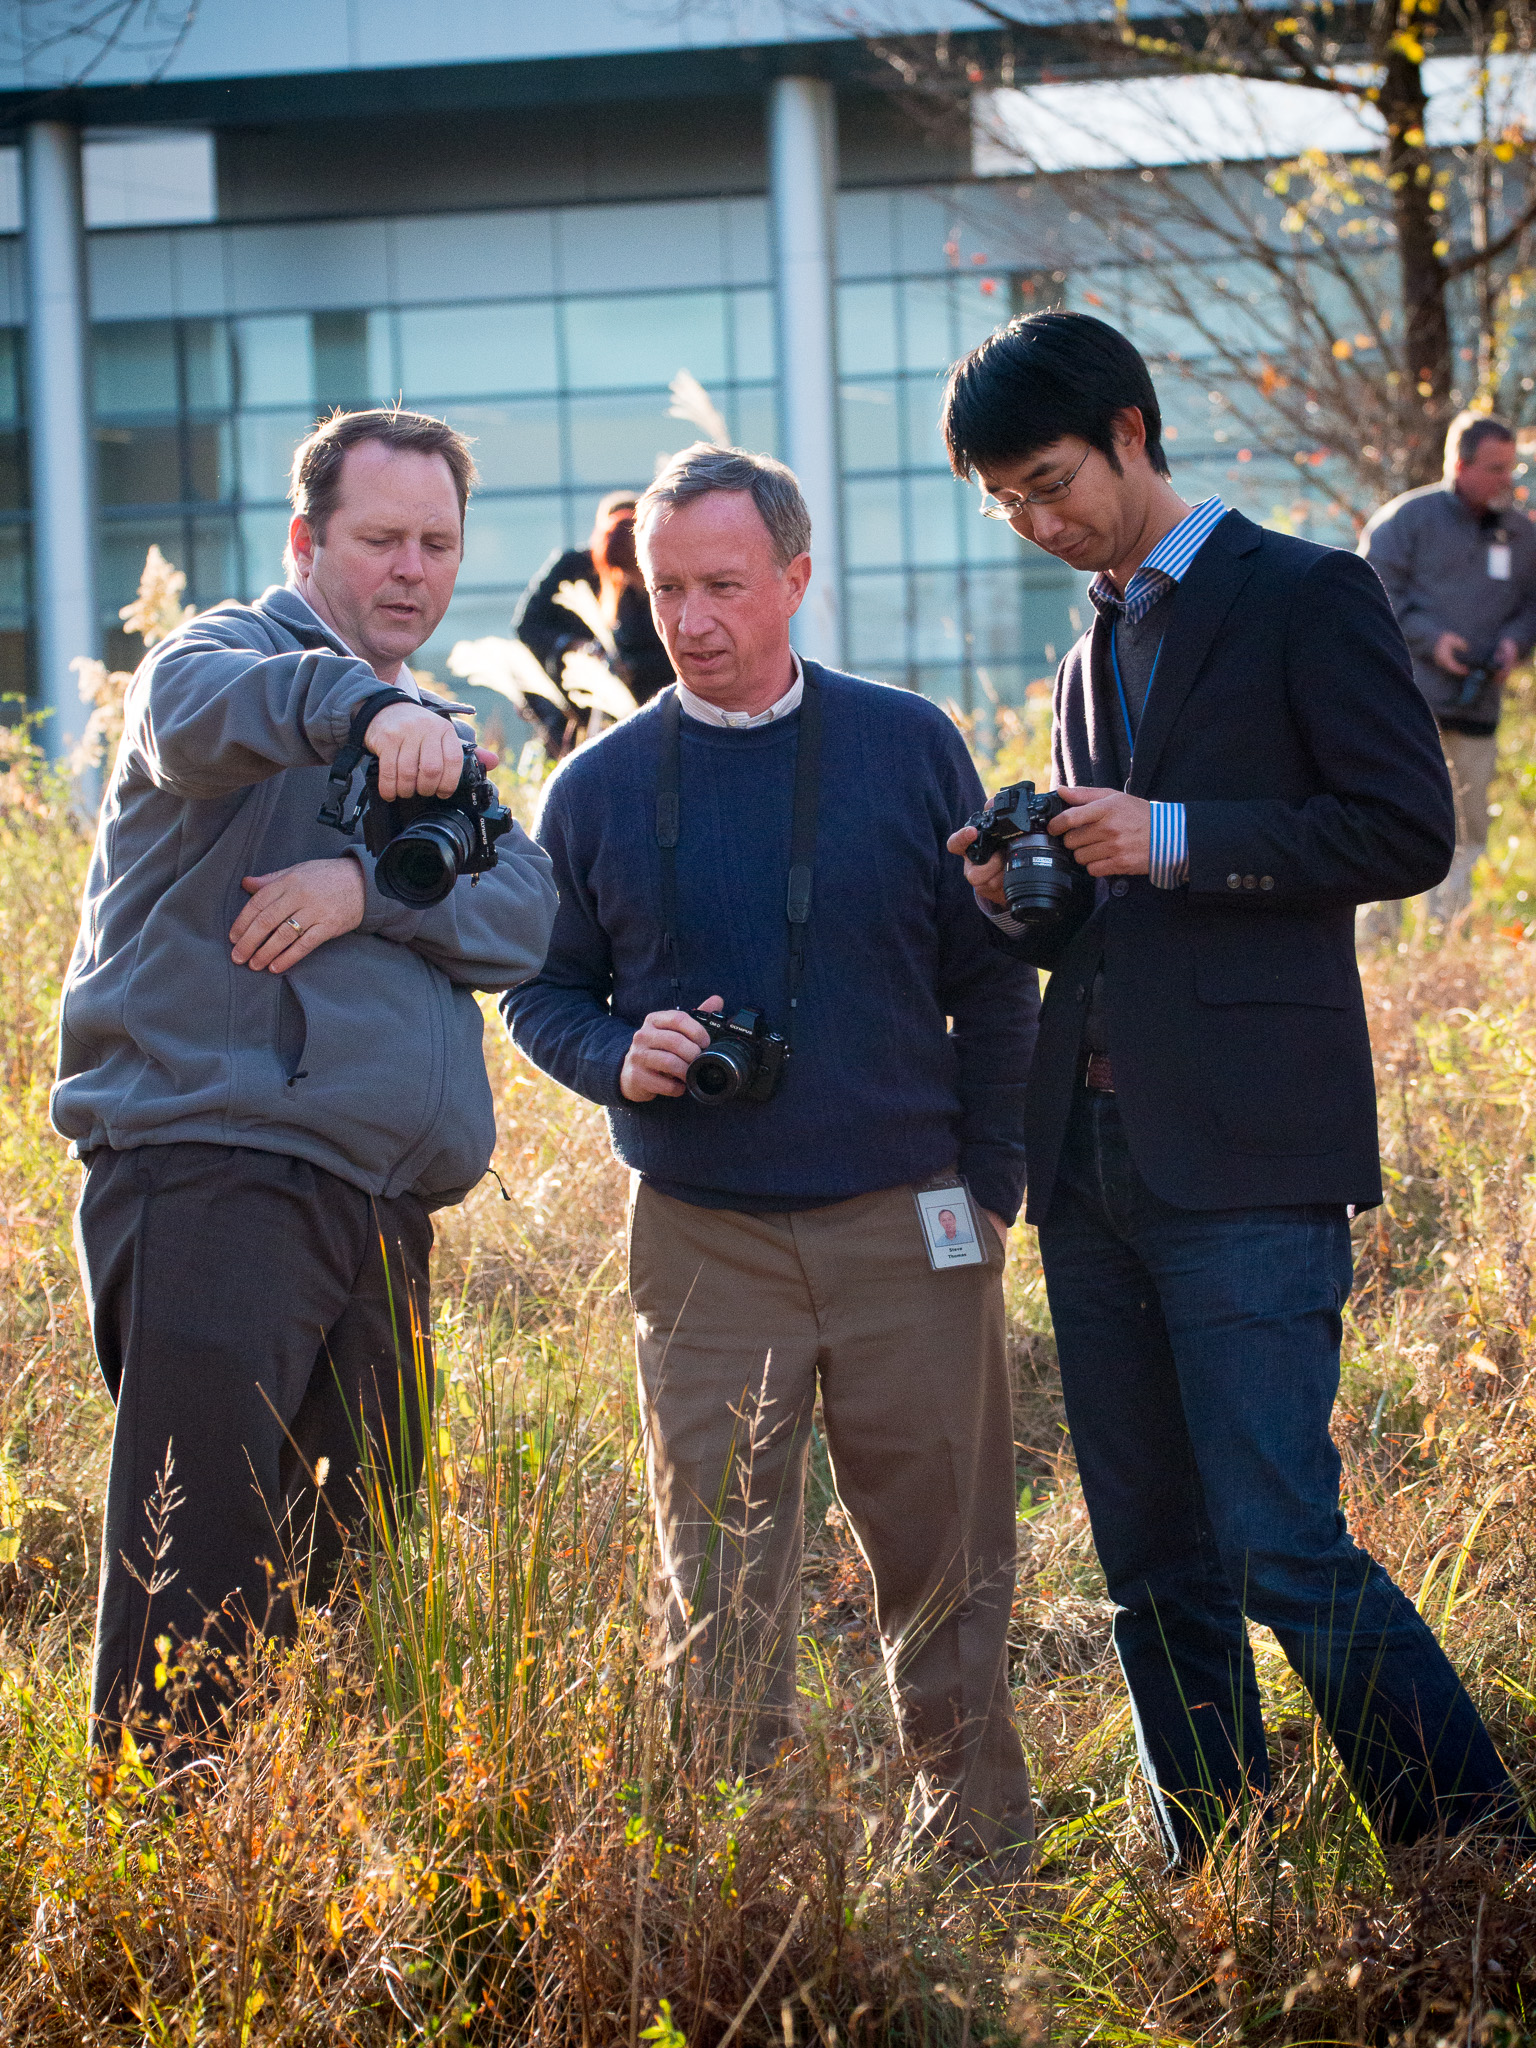 Photowalk at Olympus headquarters with Olympus employees? Incredible time! Alex McClure and Dan Kato.